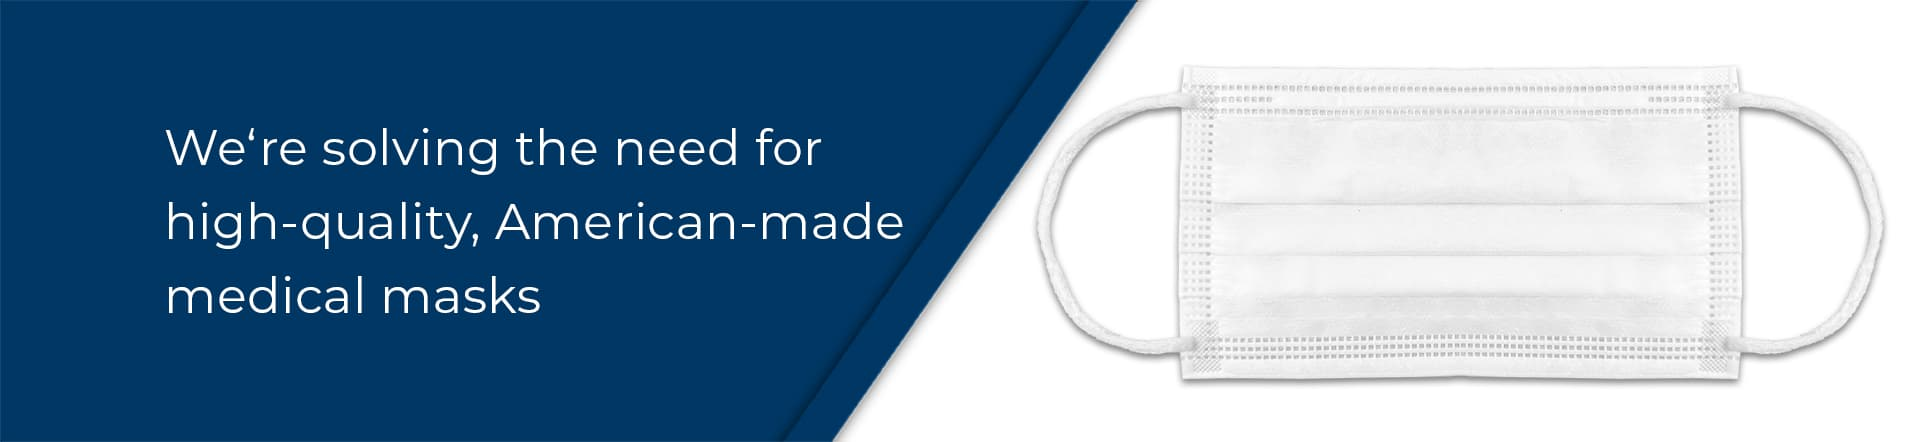 We're solving the need for high-quality, American-made medical masks.